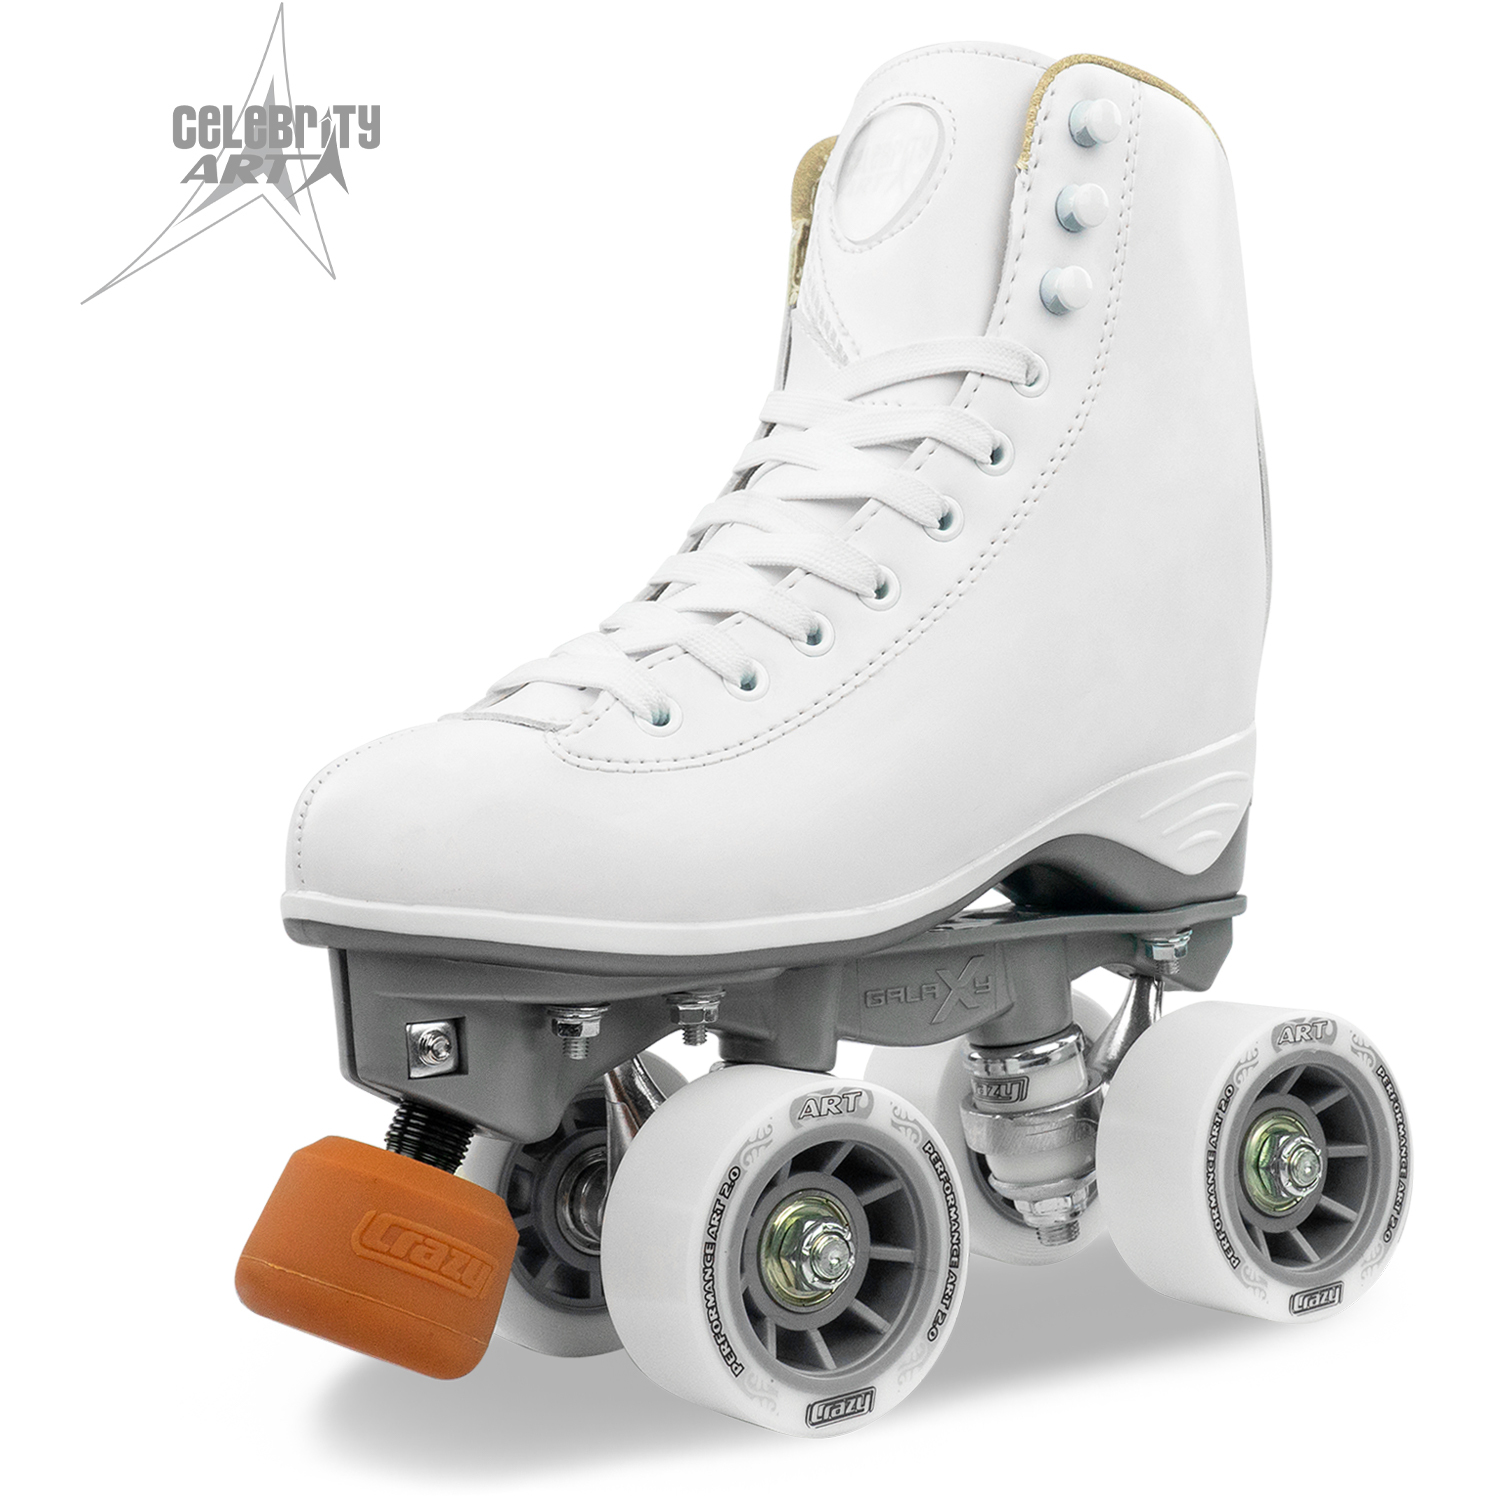 Roller Australia Celebrity Art White Roller Skates For Sale Crazy Skates Company